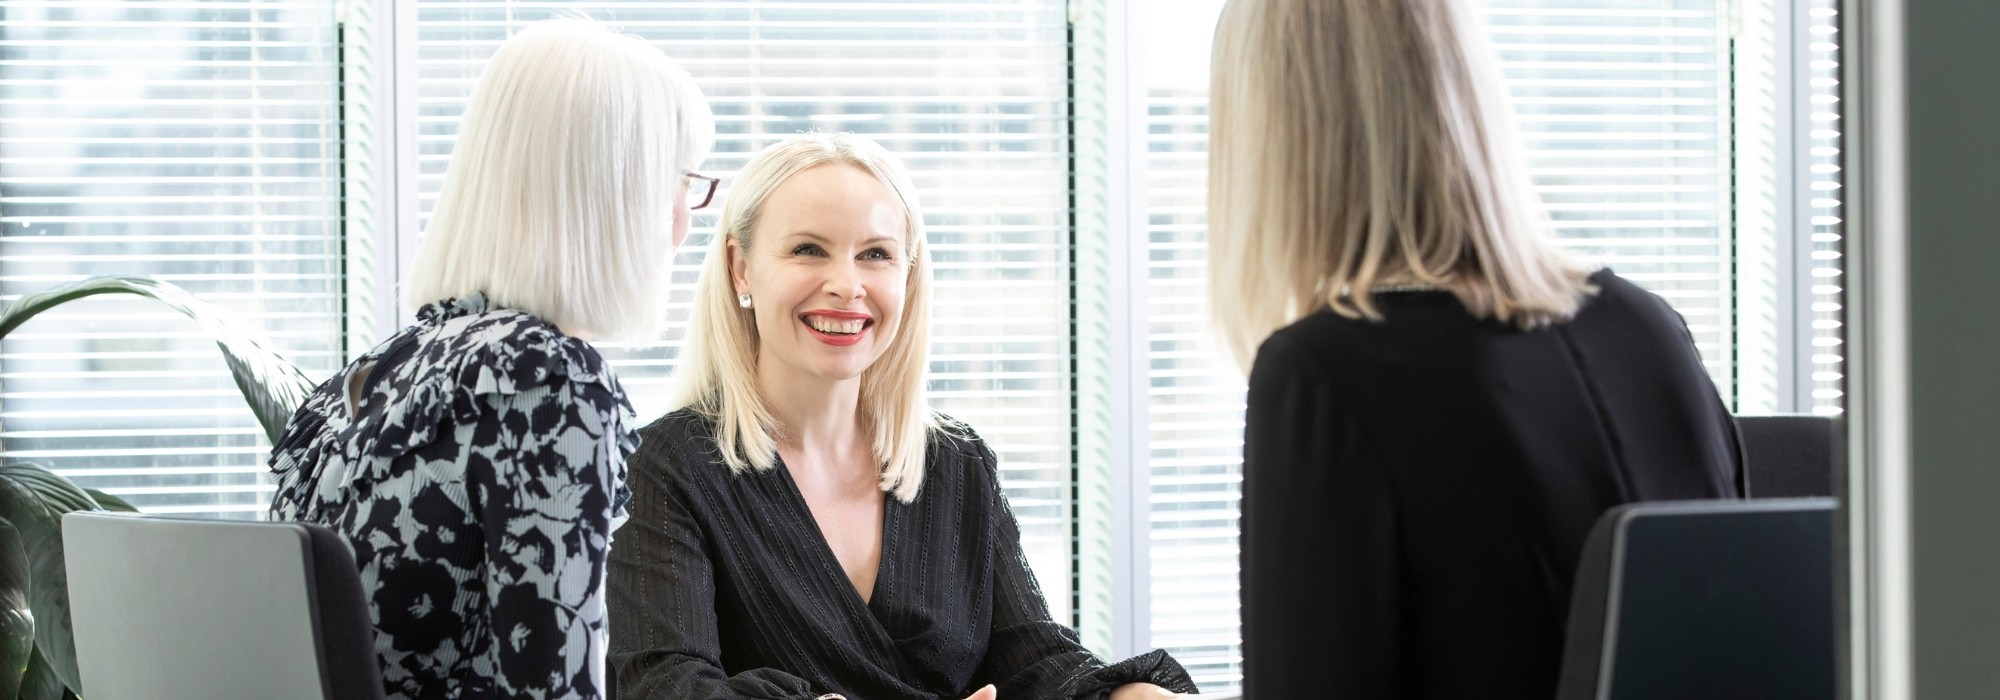 Recruitment Manager smiling in meeting